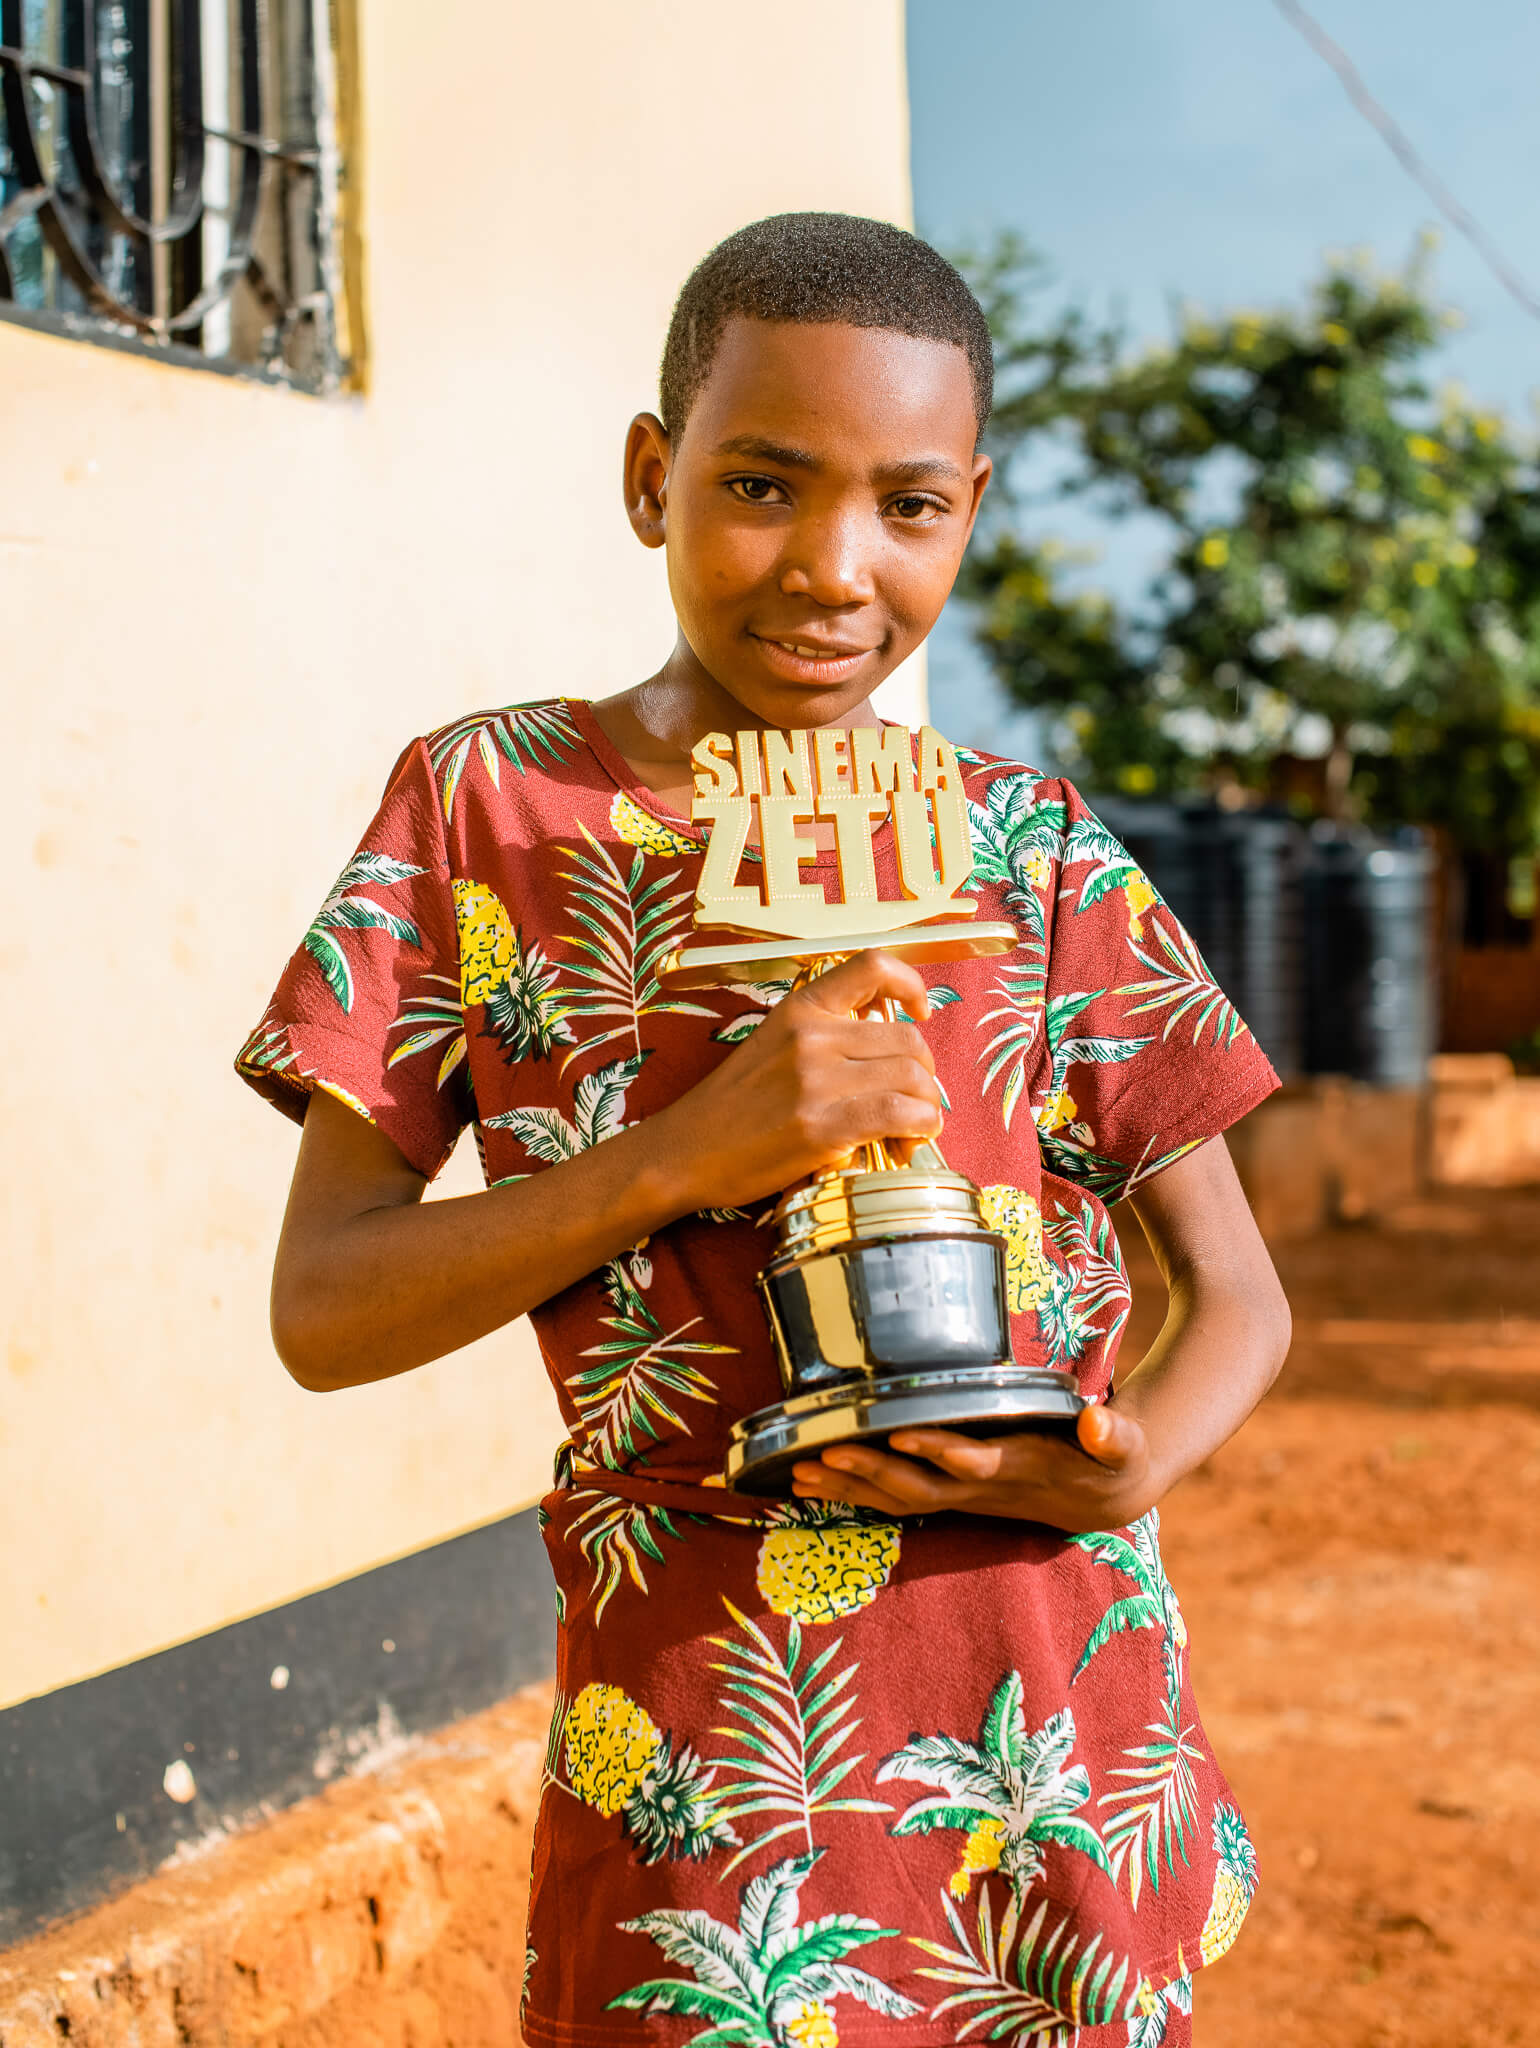 11-Year-Olds Win the Top Acting Prize in International Film Festival